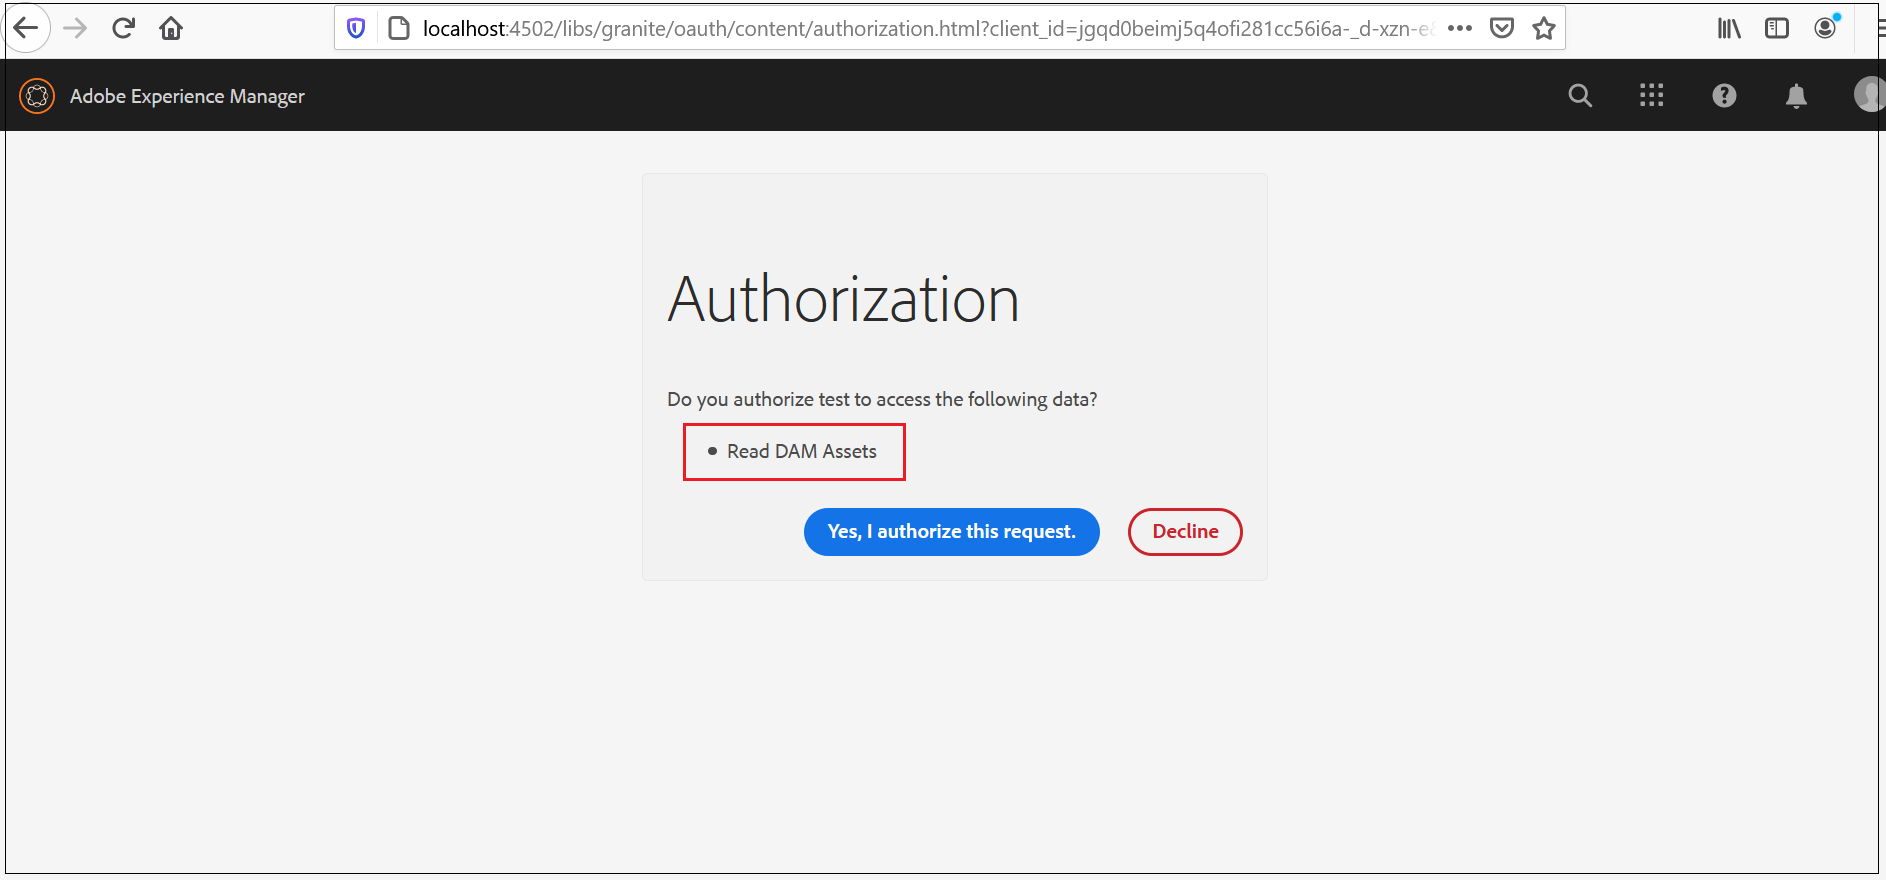 oauth-server-functionalities-in-aem